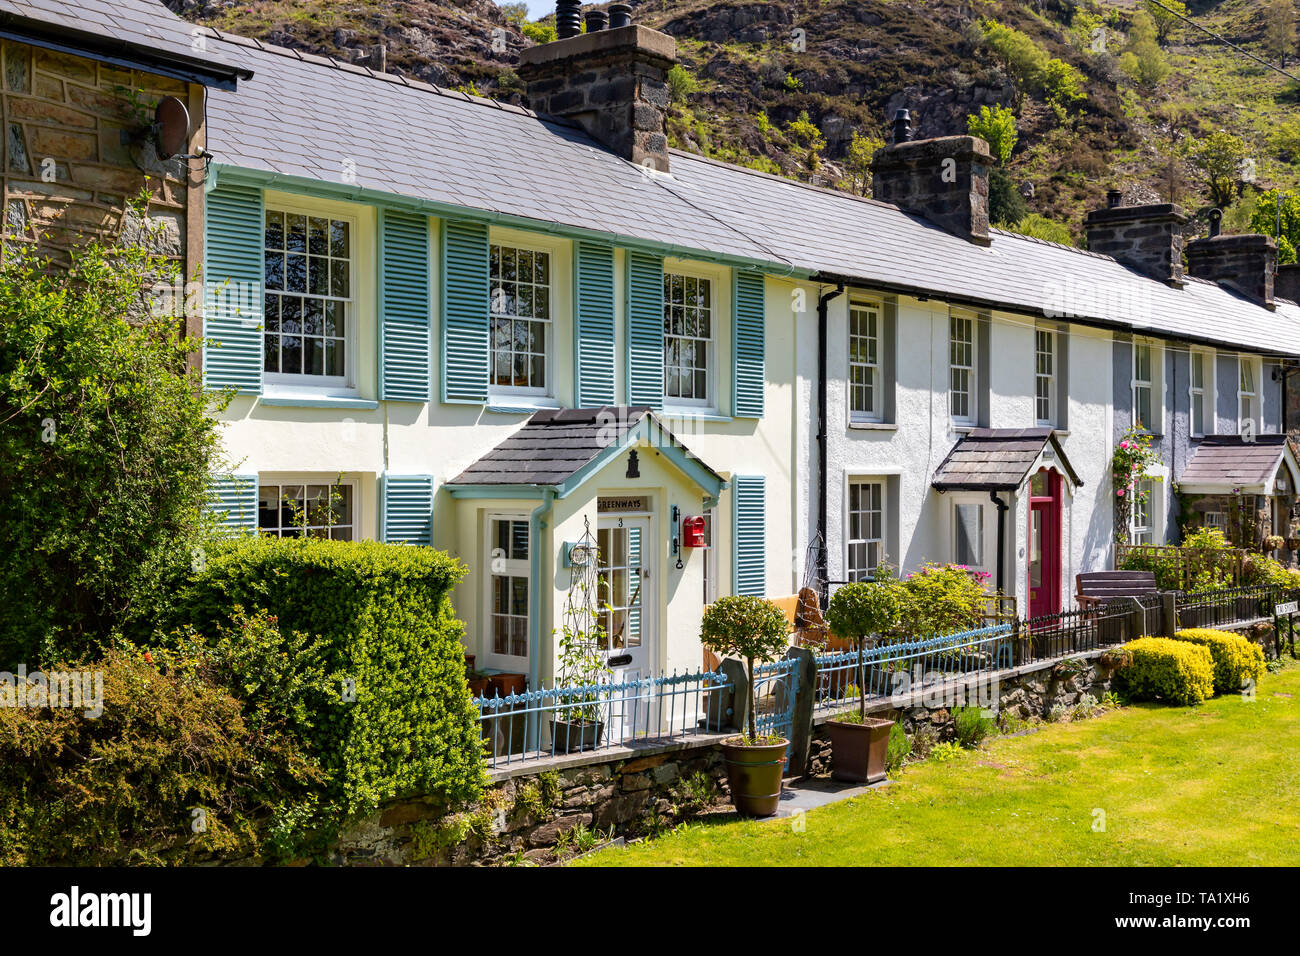 Beddgelert Gwnedd Wales May 13, 2019 Attractive row of old cottages in Beddgelert, in the Snowdonia National Park Stock Photo